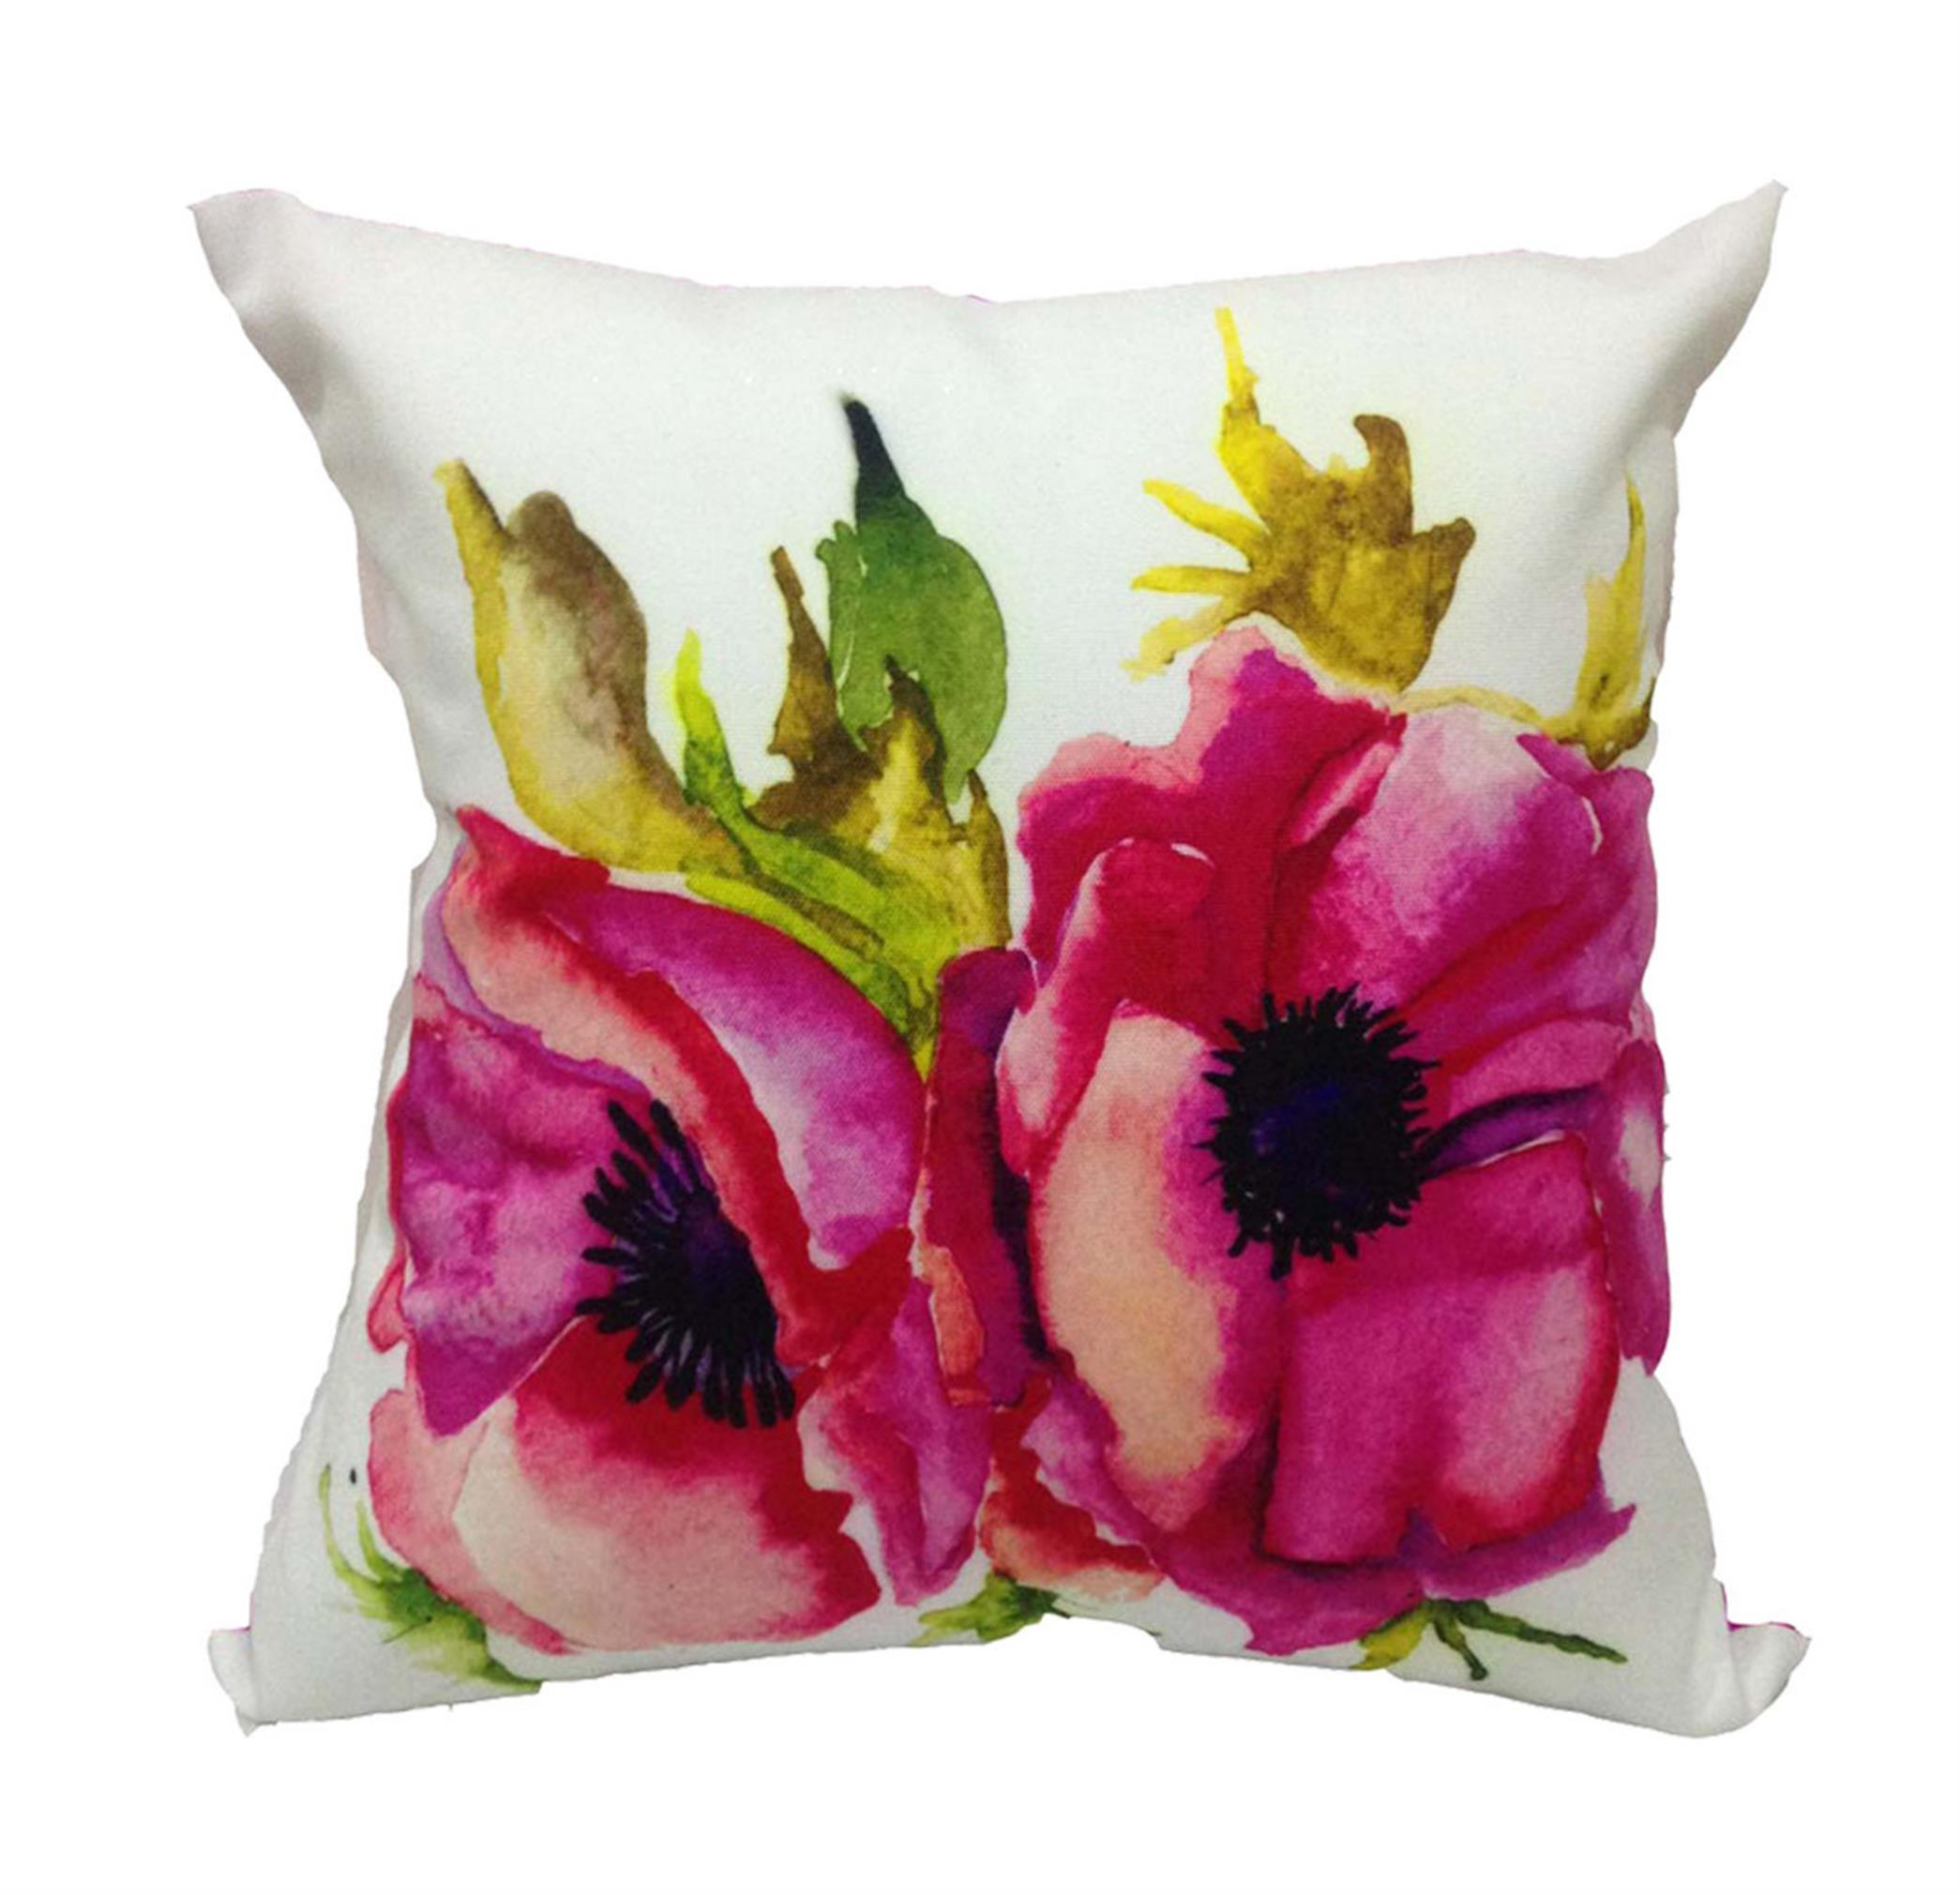 Anemone Floral cushion